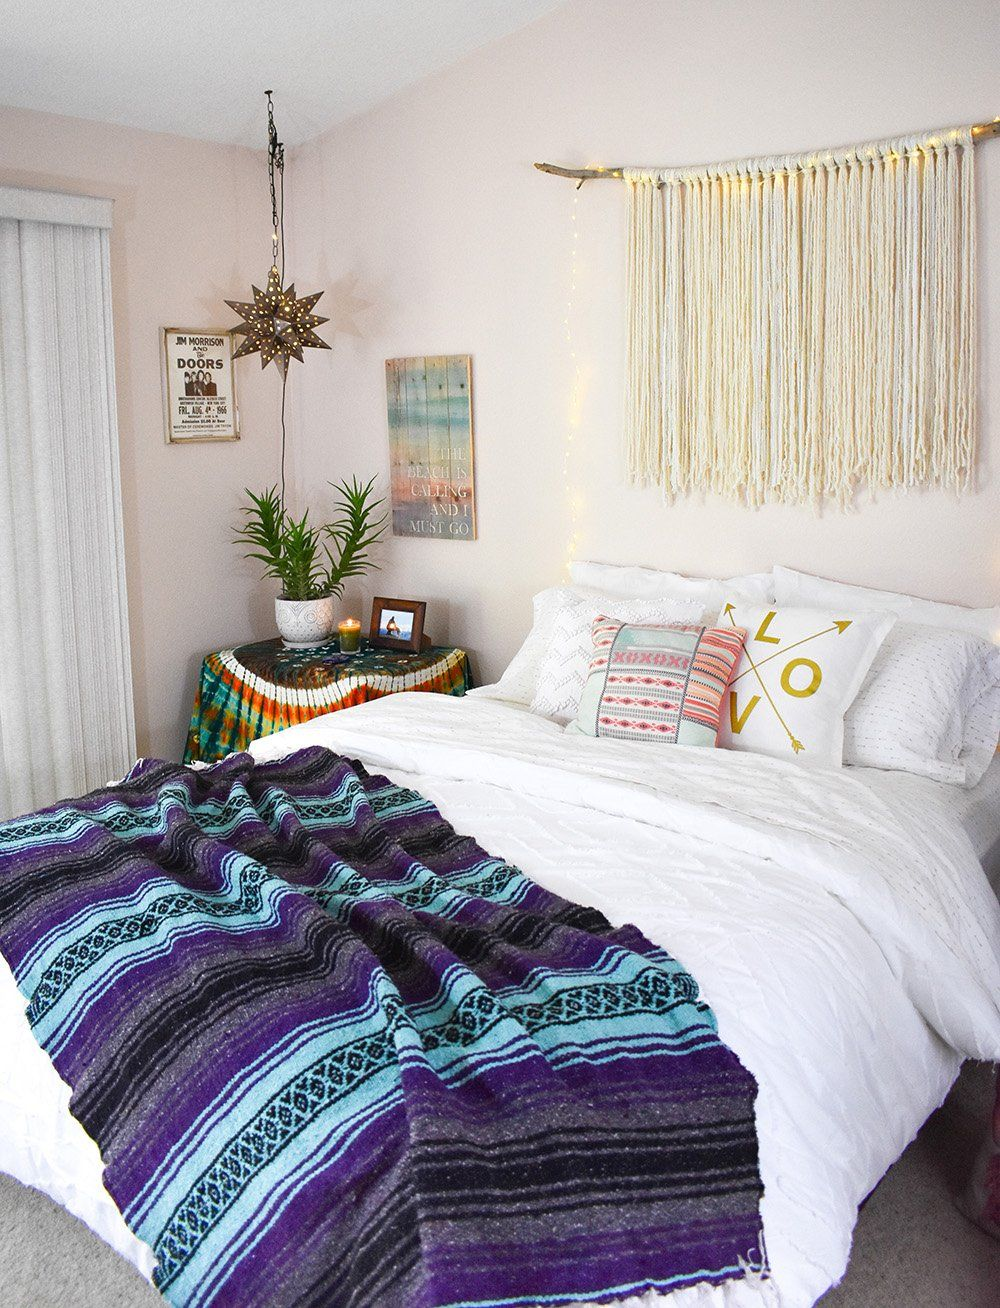 Boho + Hygge Dreamy Home Style in 2020 Bedroom decor